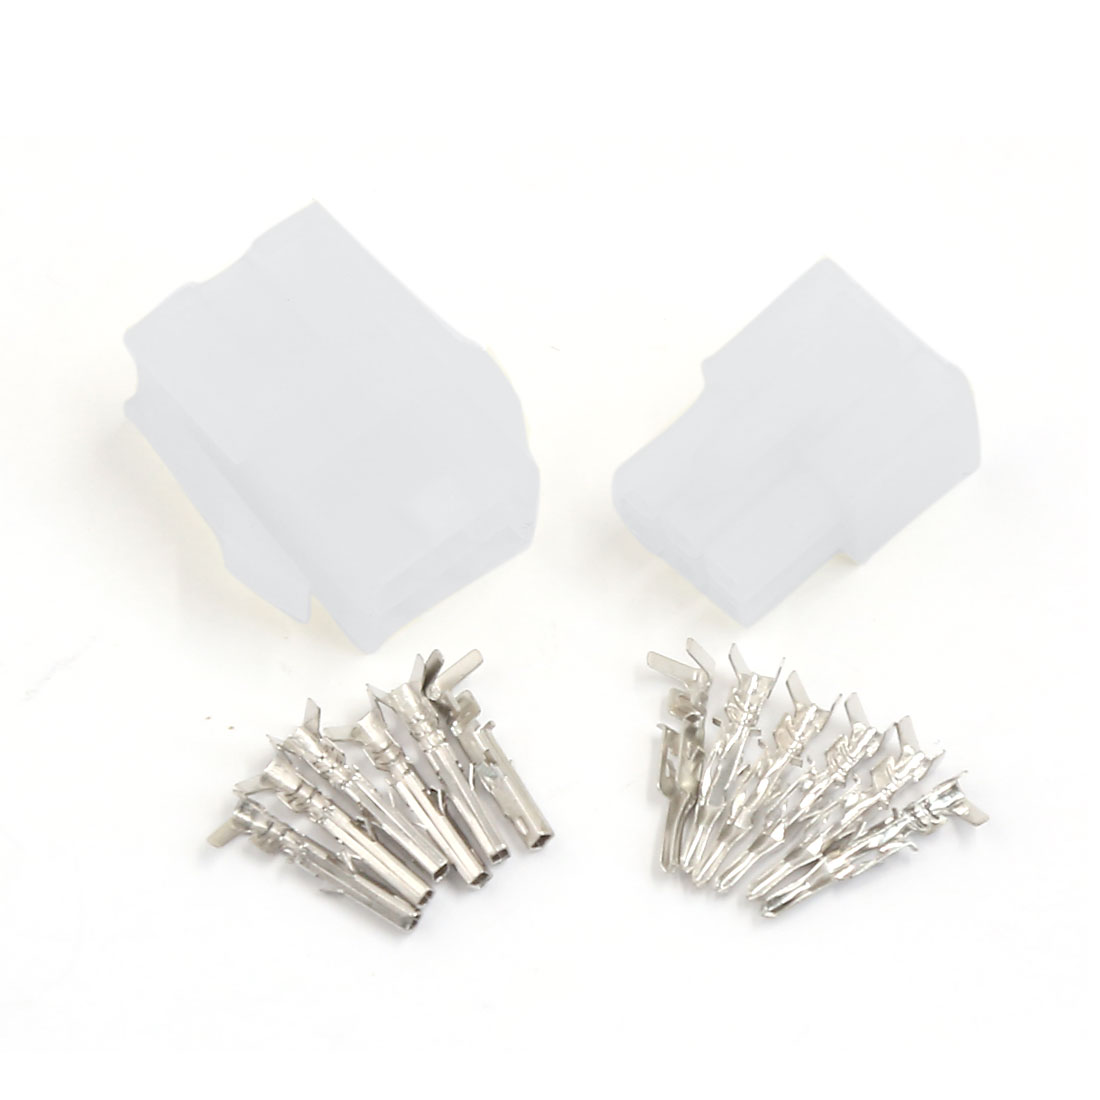 6 Pins Automobile Electrical Connectors Male to Female Socket Plugs